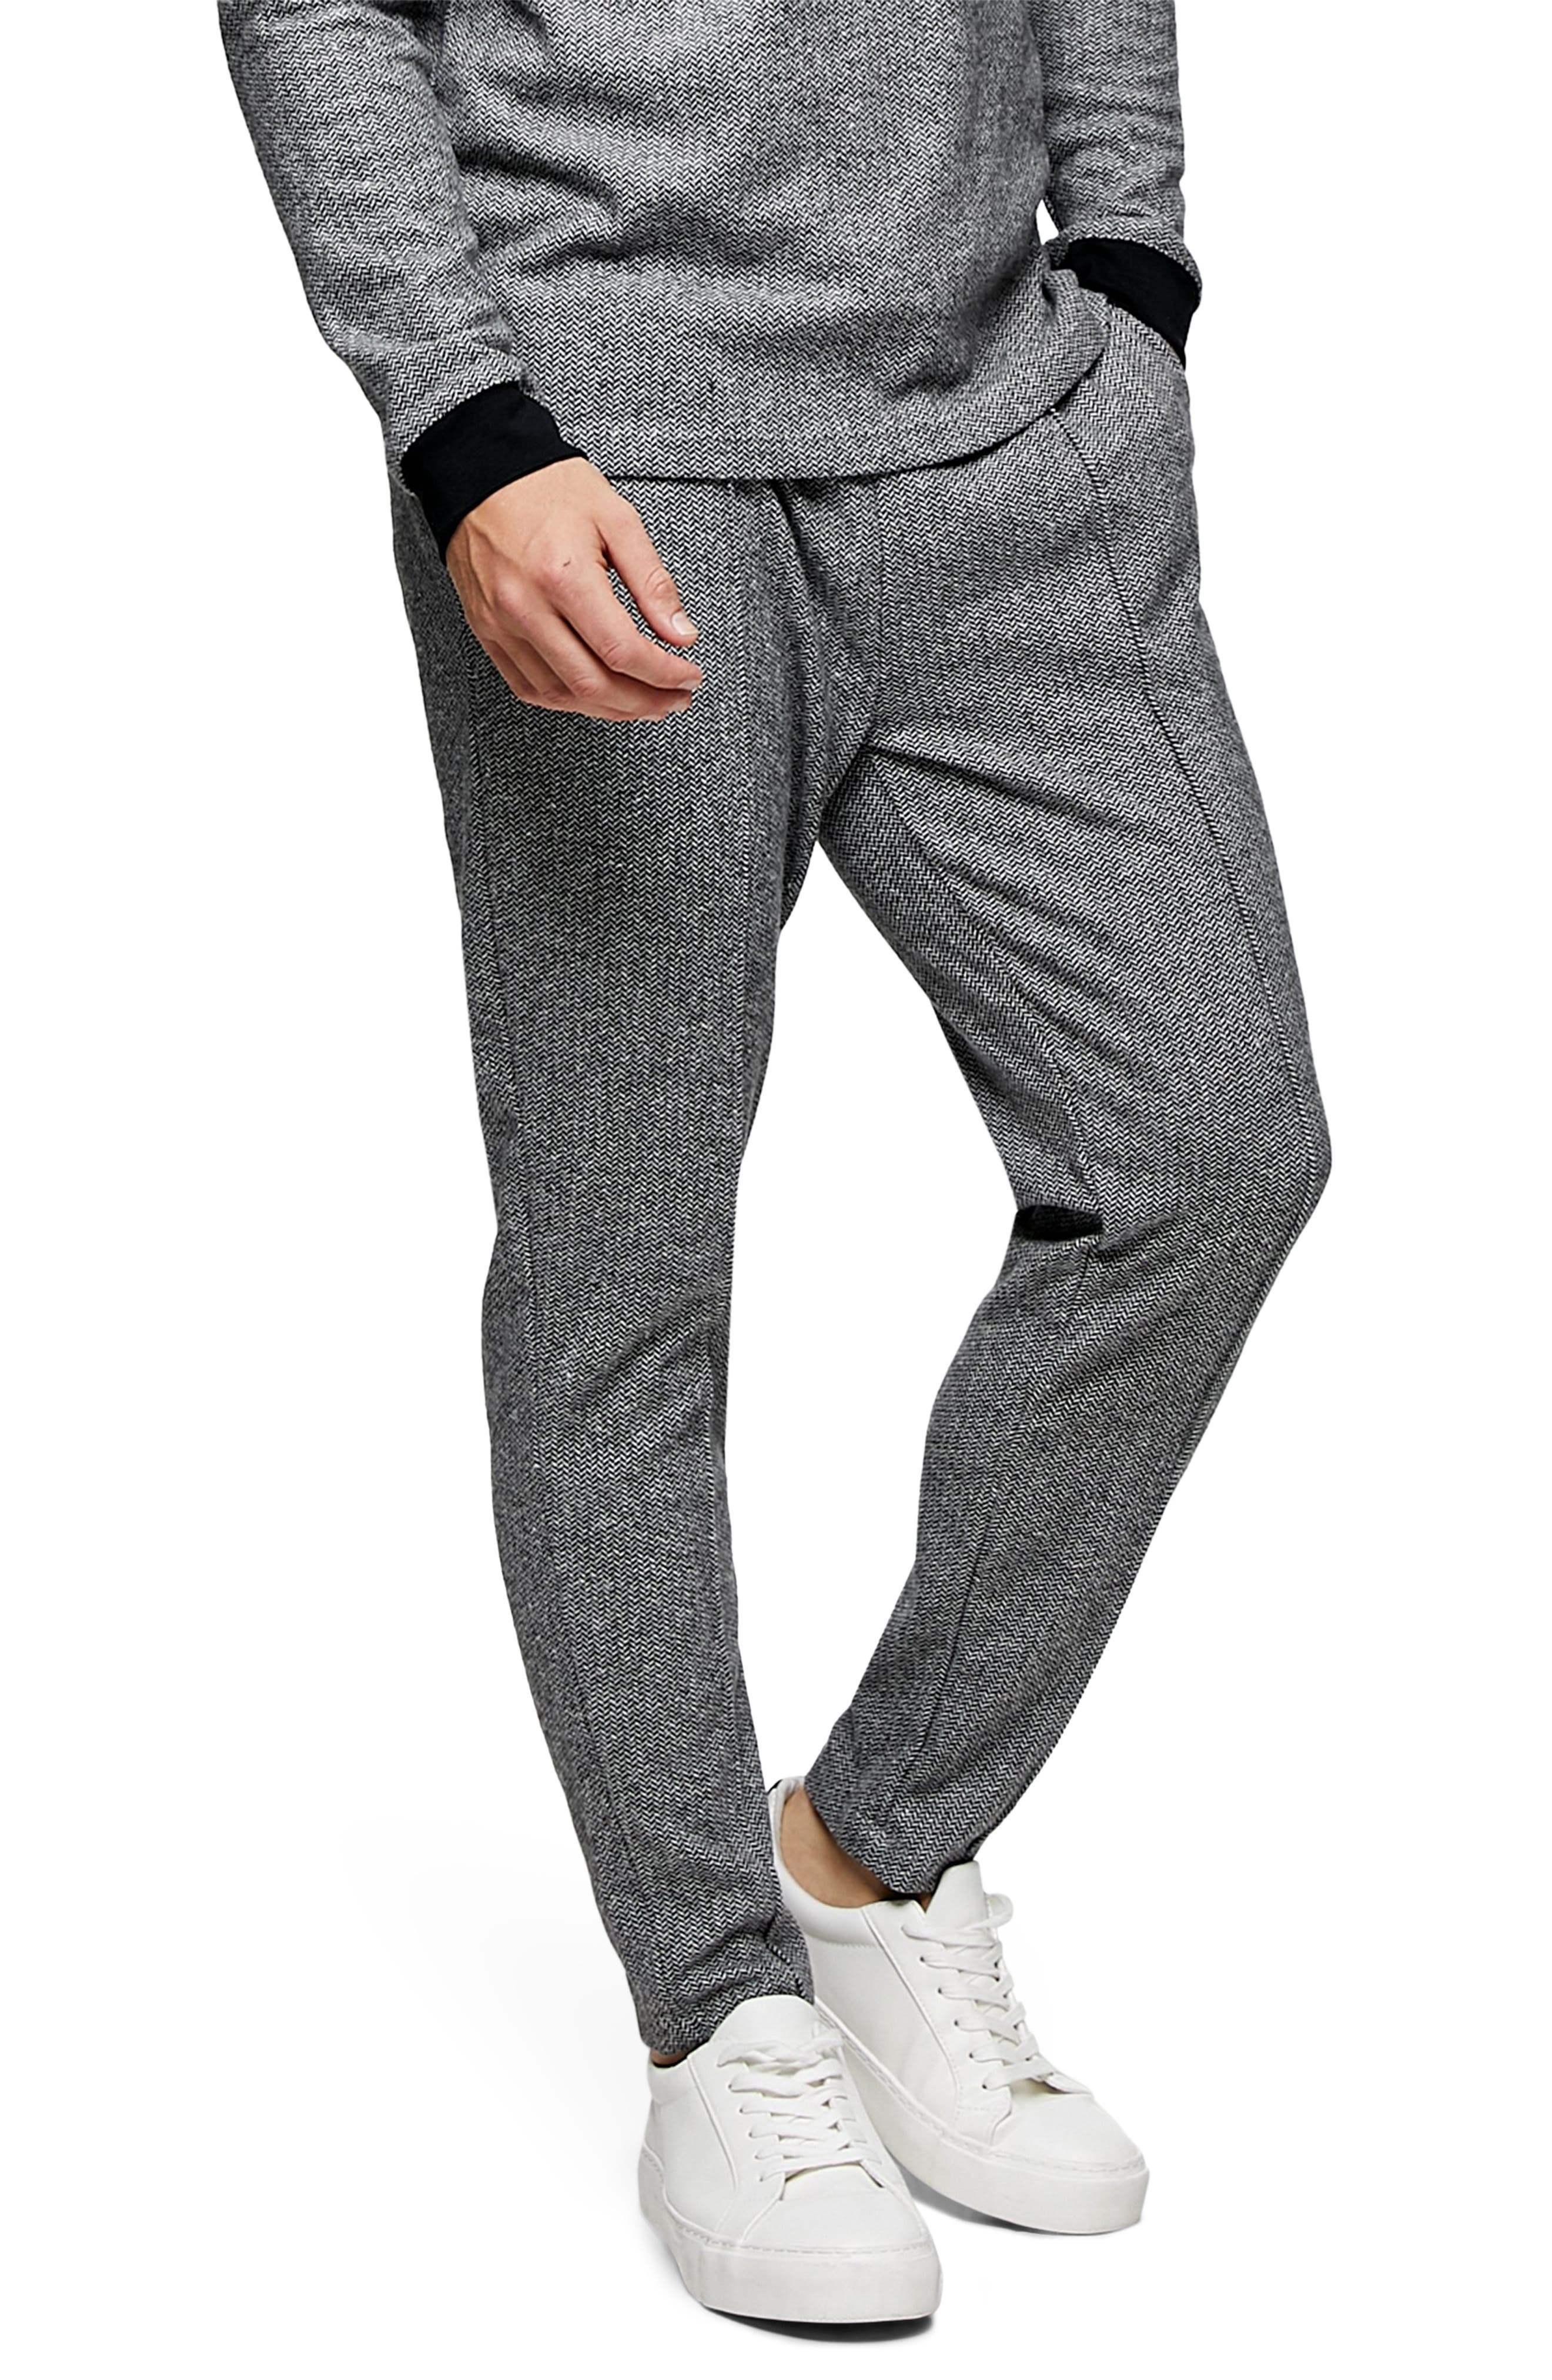 An athletics staple gets a serious upgrade with classic herringbone patterning and center seams that really sharpen the look. Style Name: Topman Herringbone Joggers. Style Number: 6138980. Available in stores.